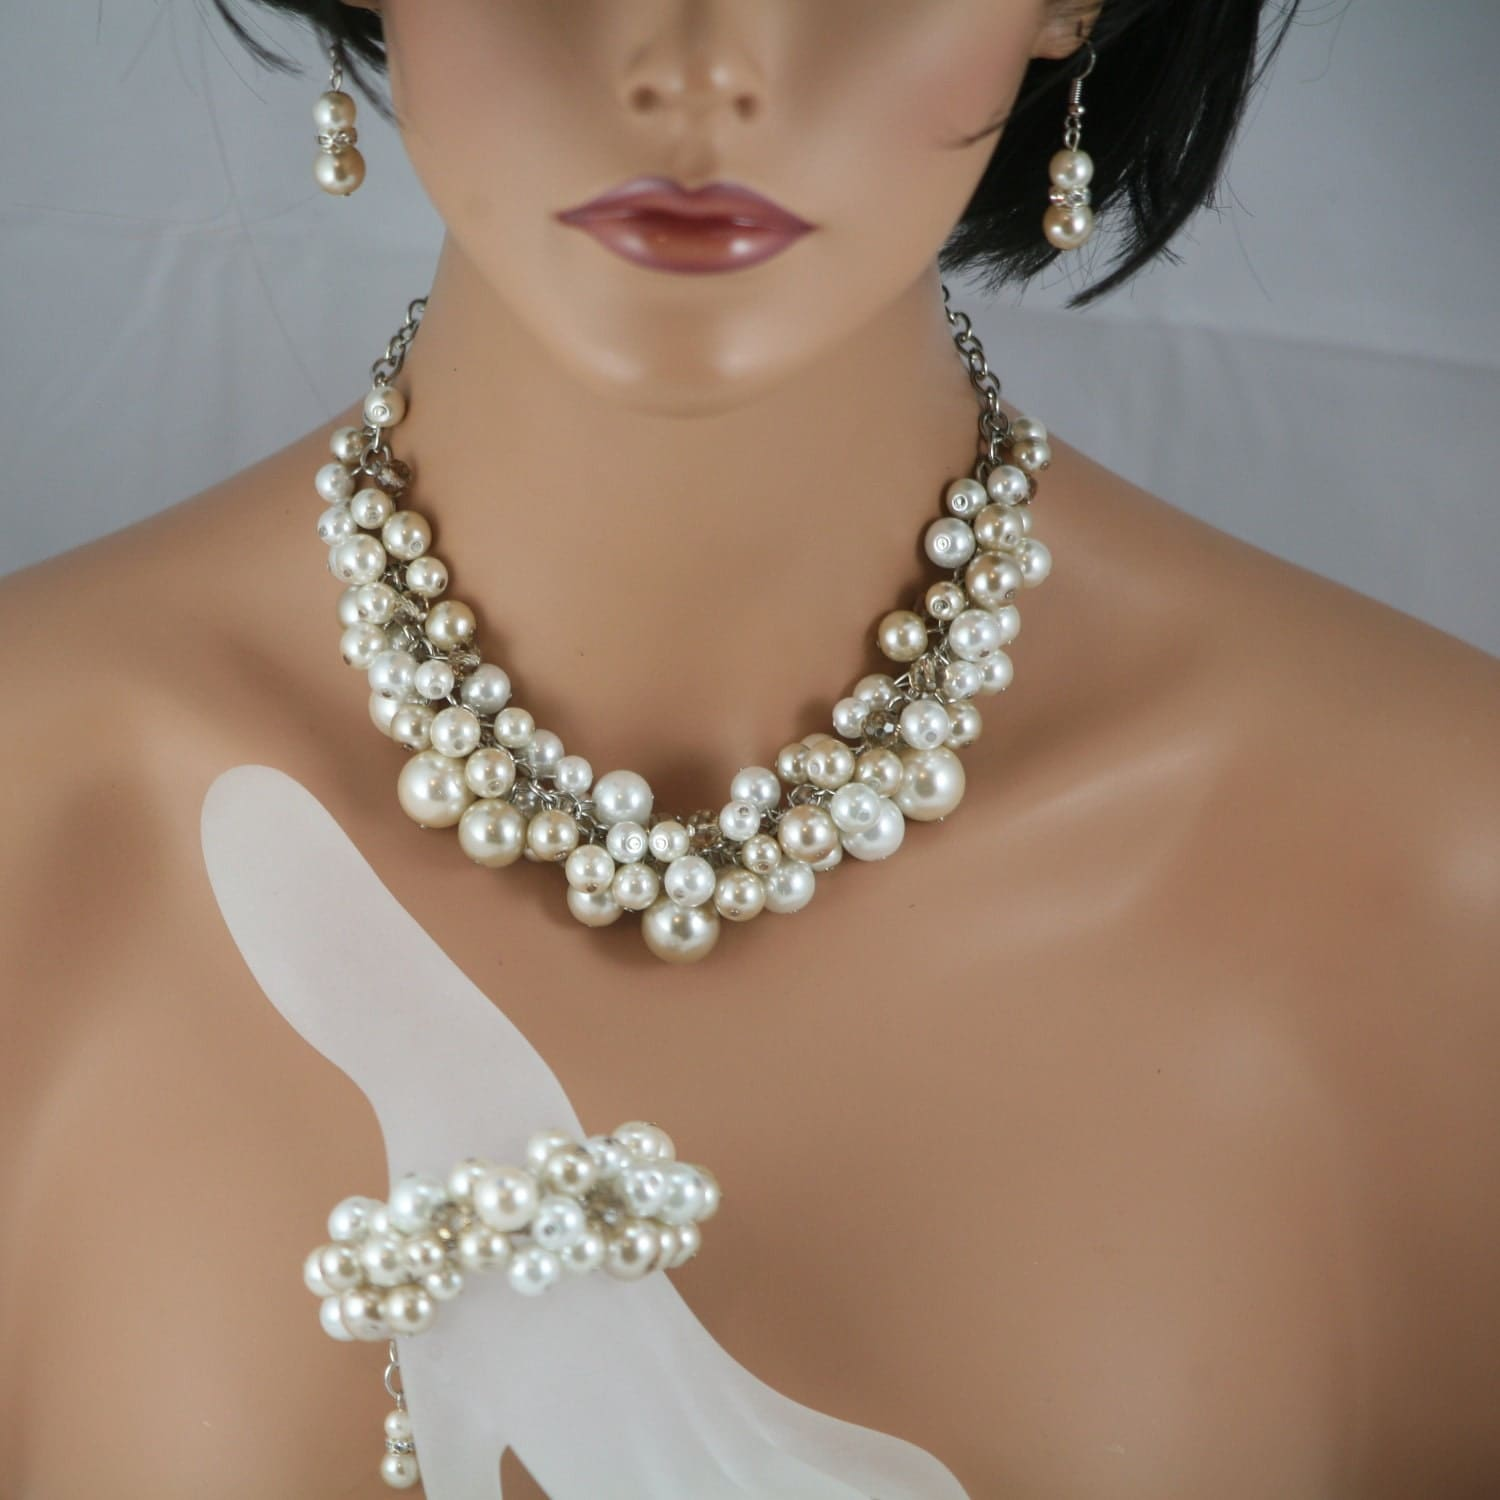 Chunky pearl necklace/bracelet/earrings champagne white and